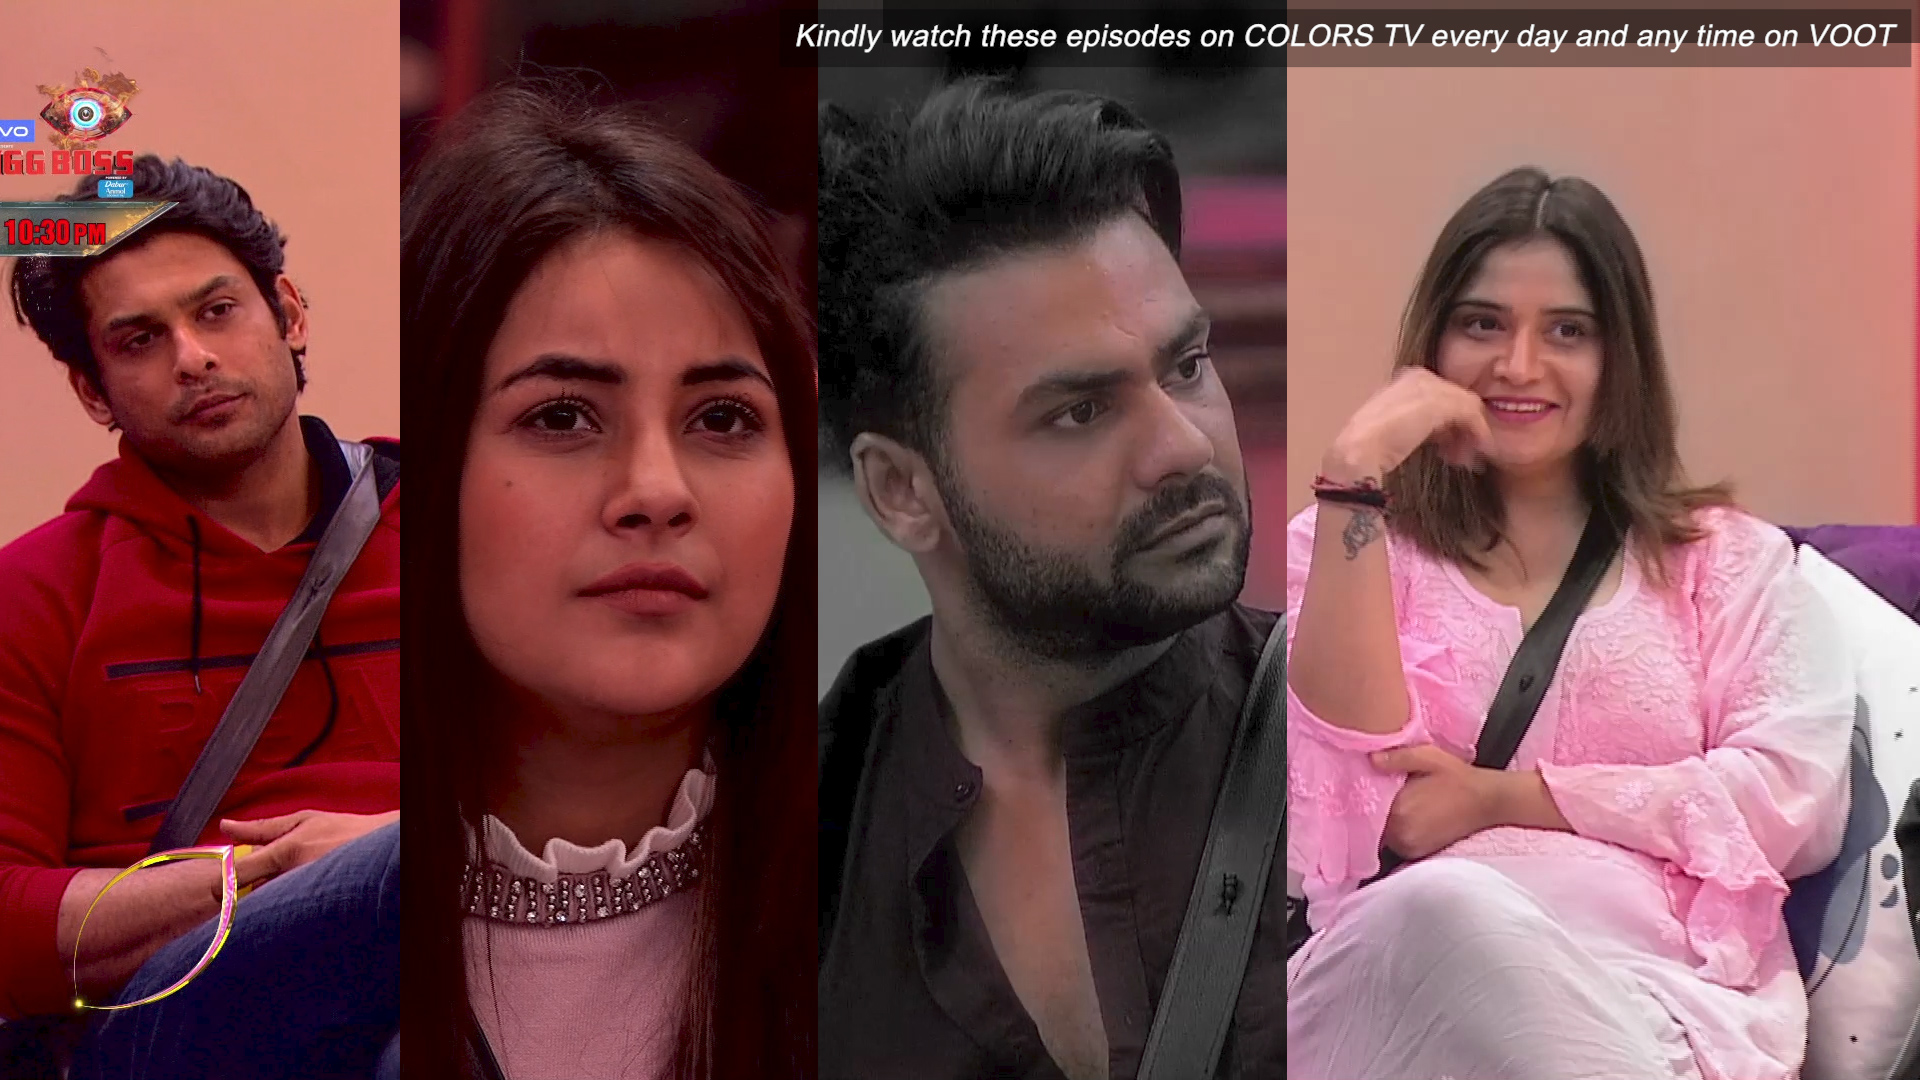 Bigg Boss 13 Episode 85 Updates | 27 Jan 2020: Sidharth, Shehnaaz, Arti, Vishal हुए नॉमिनेट